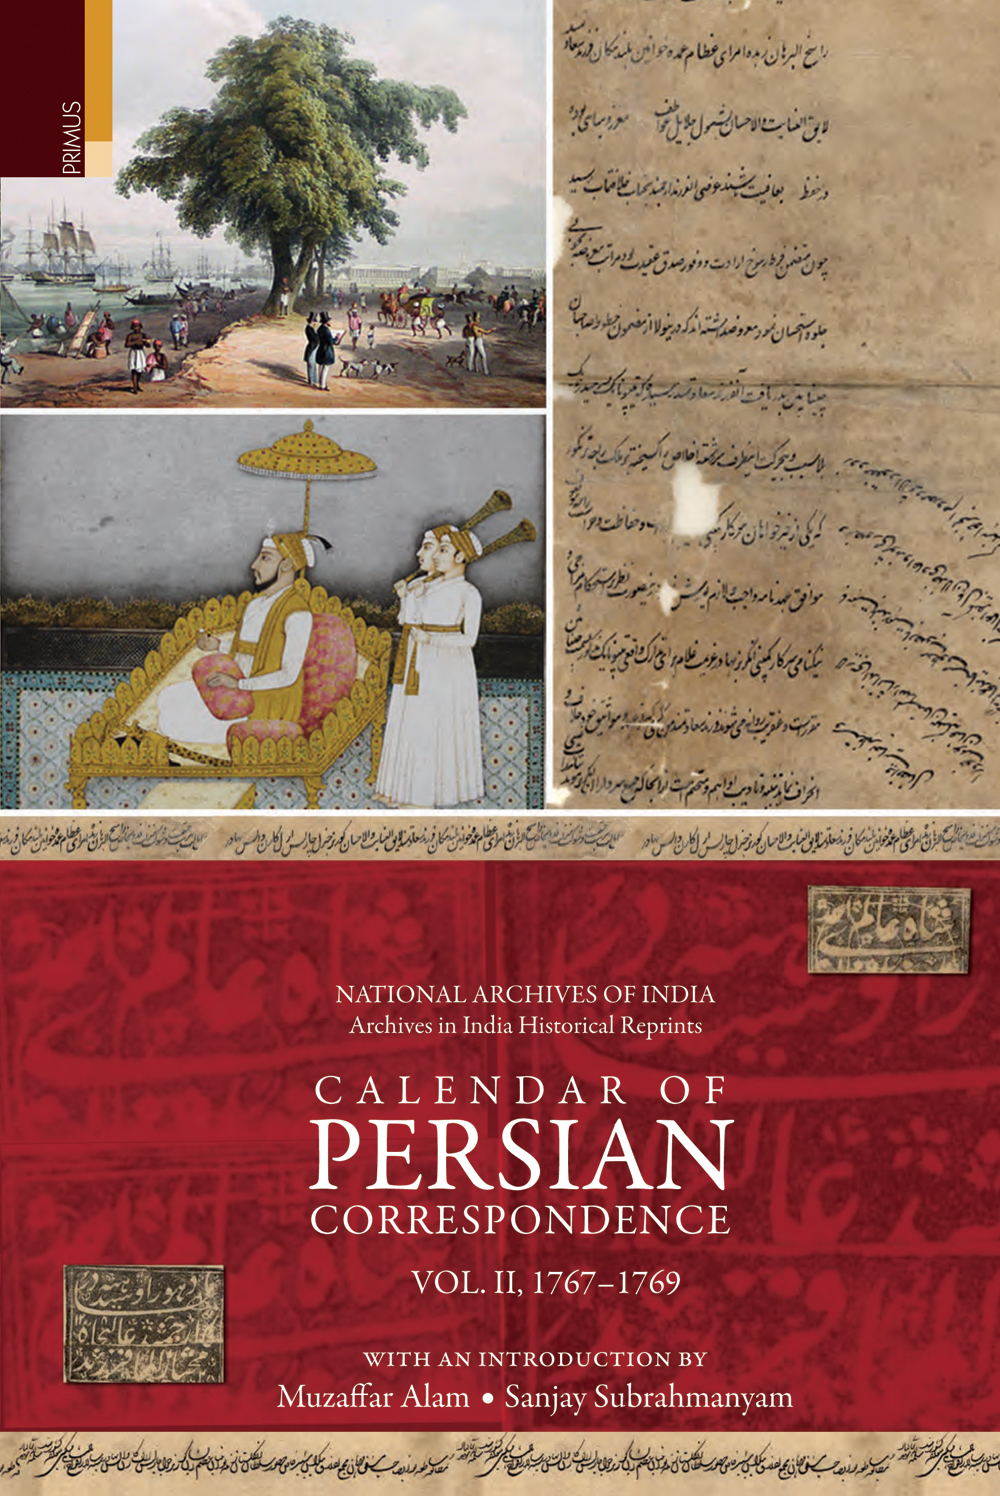 Calendar of Persian Correspondence With and Introduciton by Muzaffar Alam and Sanjay Subrahmanyam, Volume II: 1767- 1769